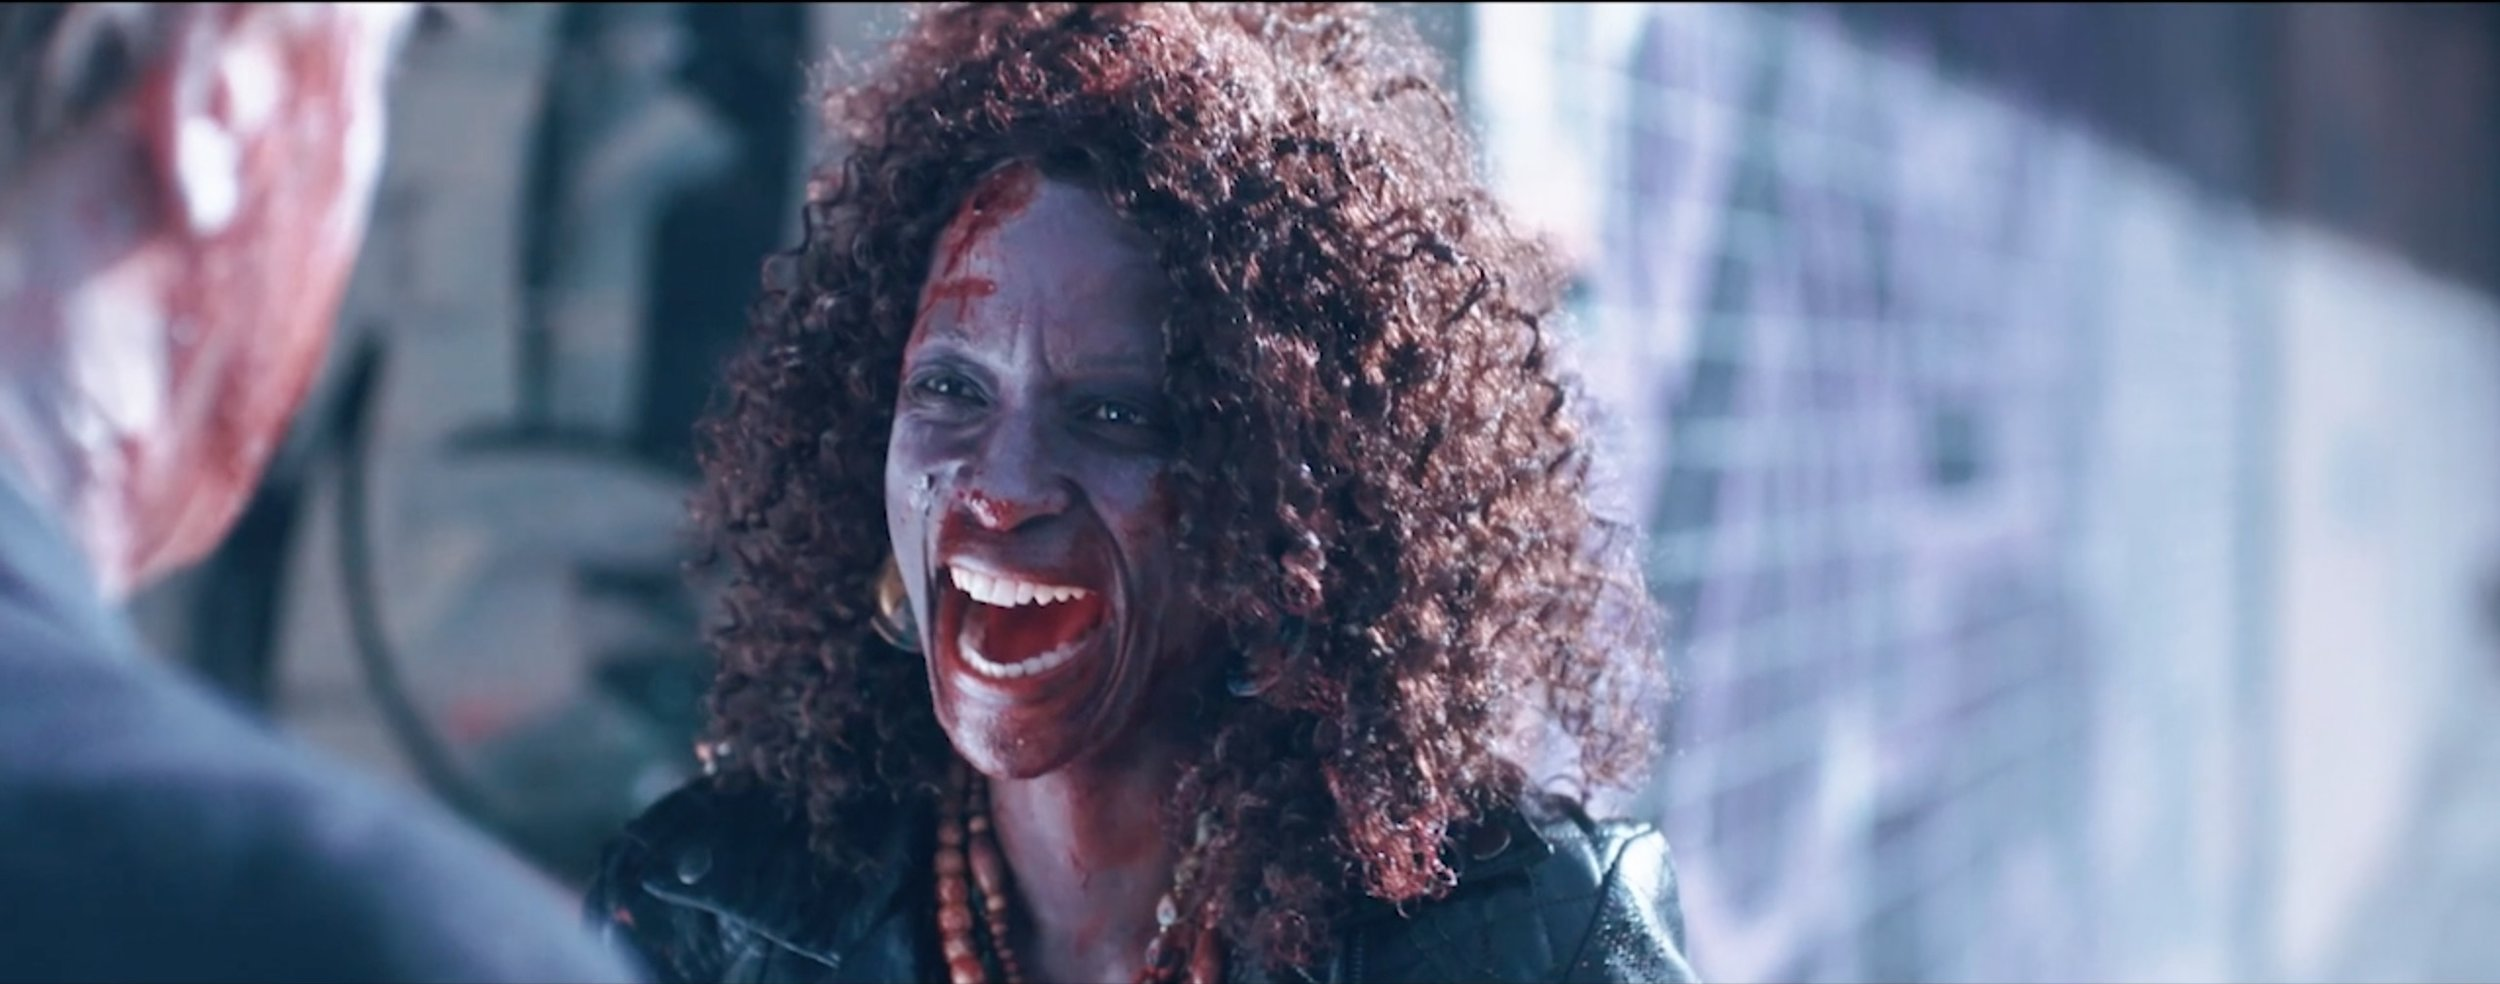 Angie (Hlubi Mboya) plays the renegade love interest